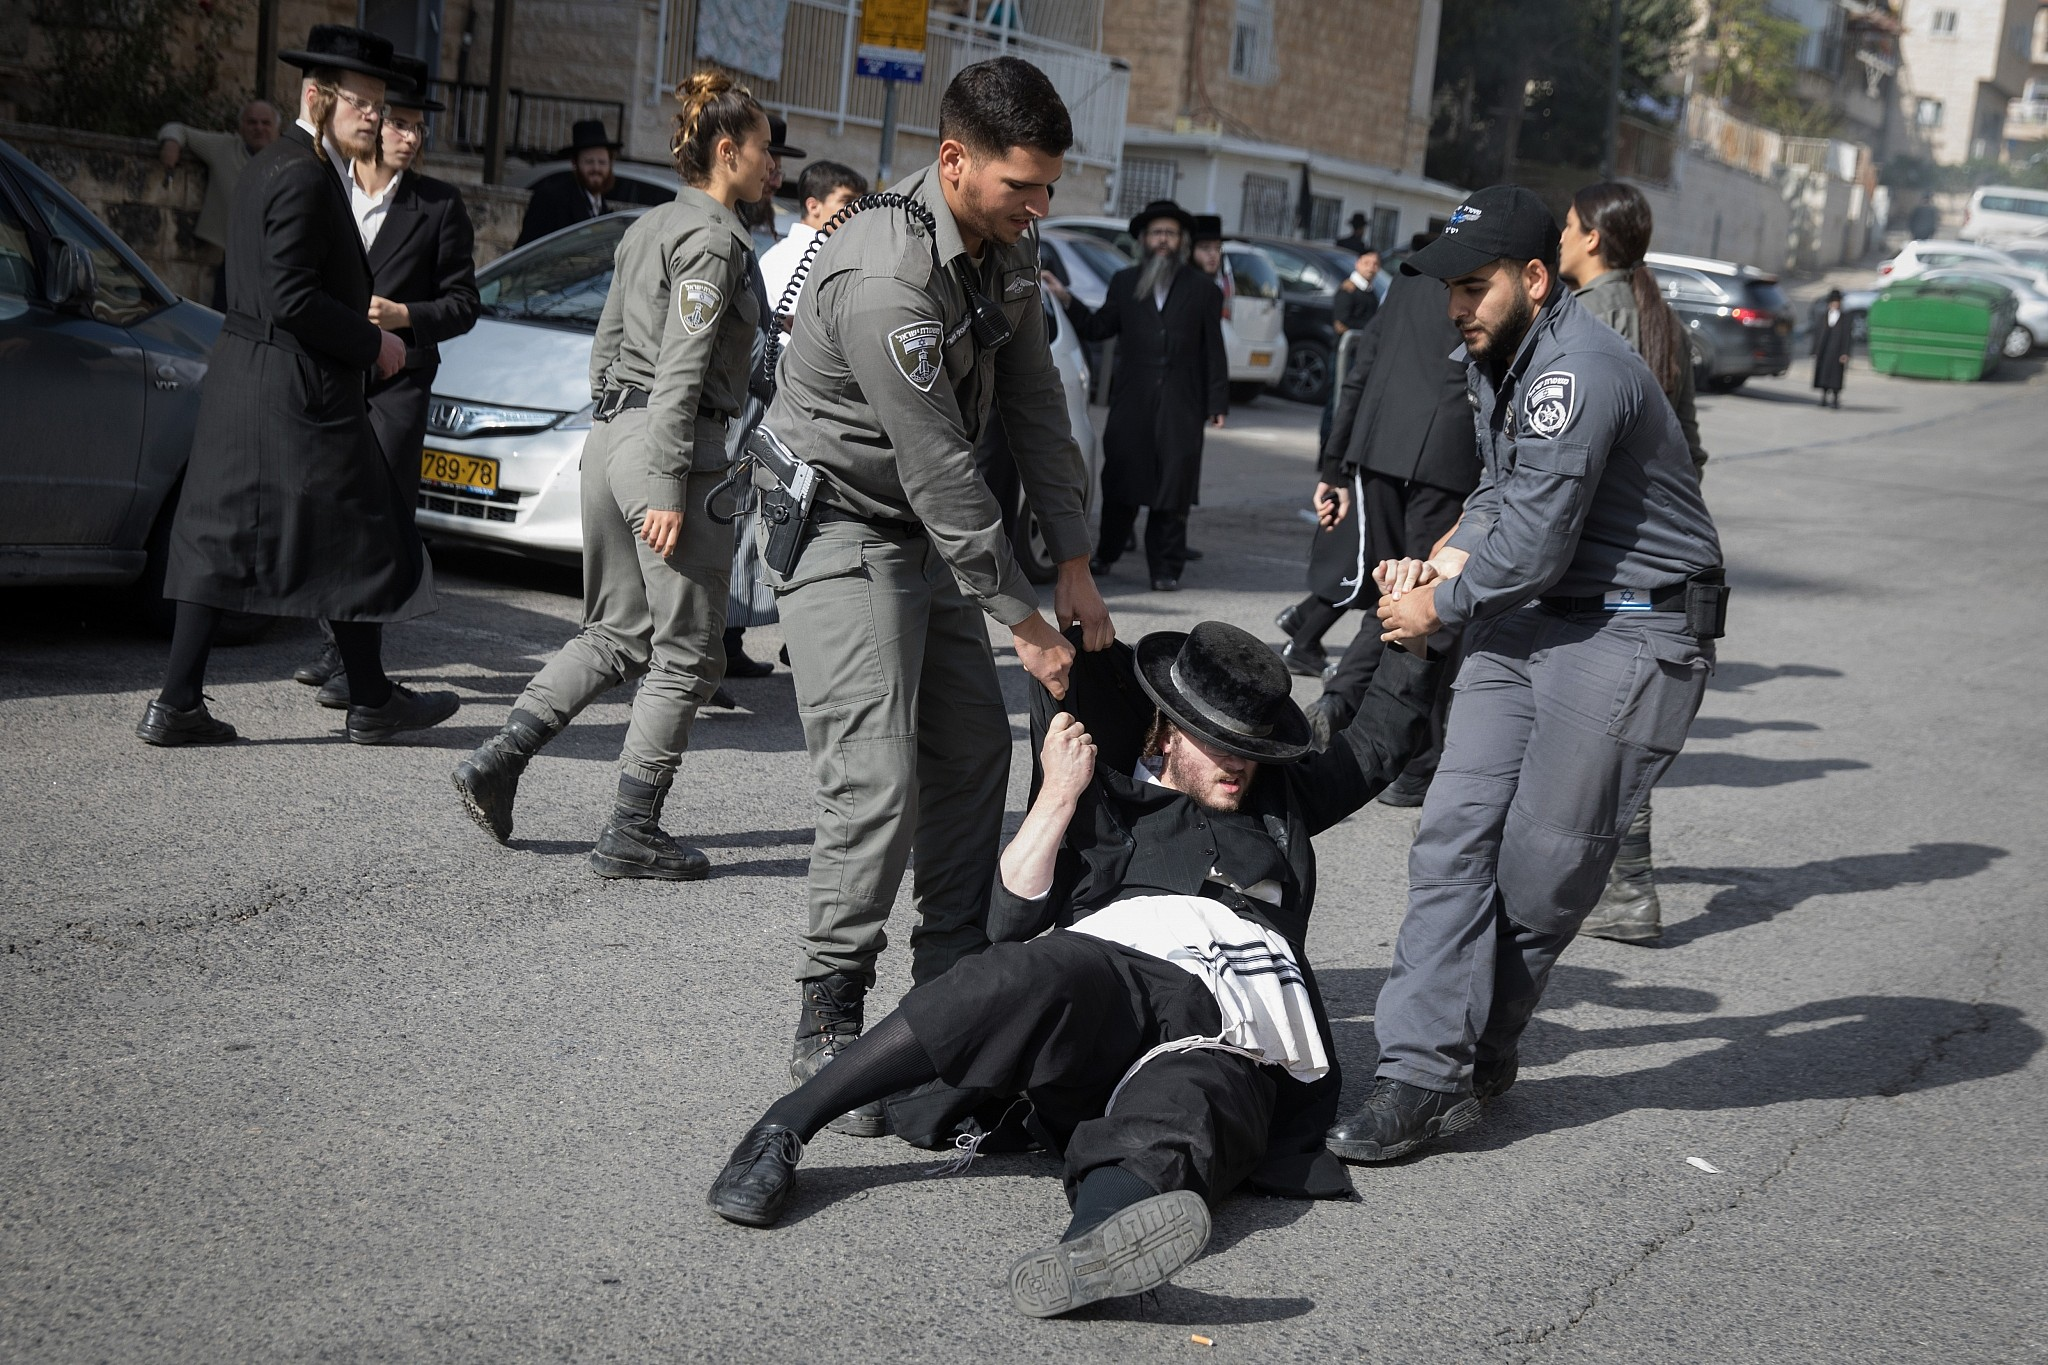 Orthodox Beit Shemesh: The Ripples Of A Stone In Beit Shemesh: A Haredi Response